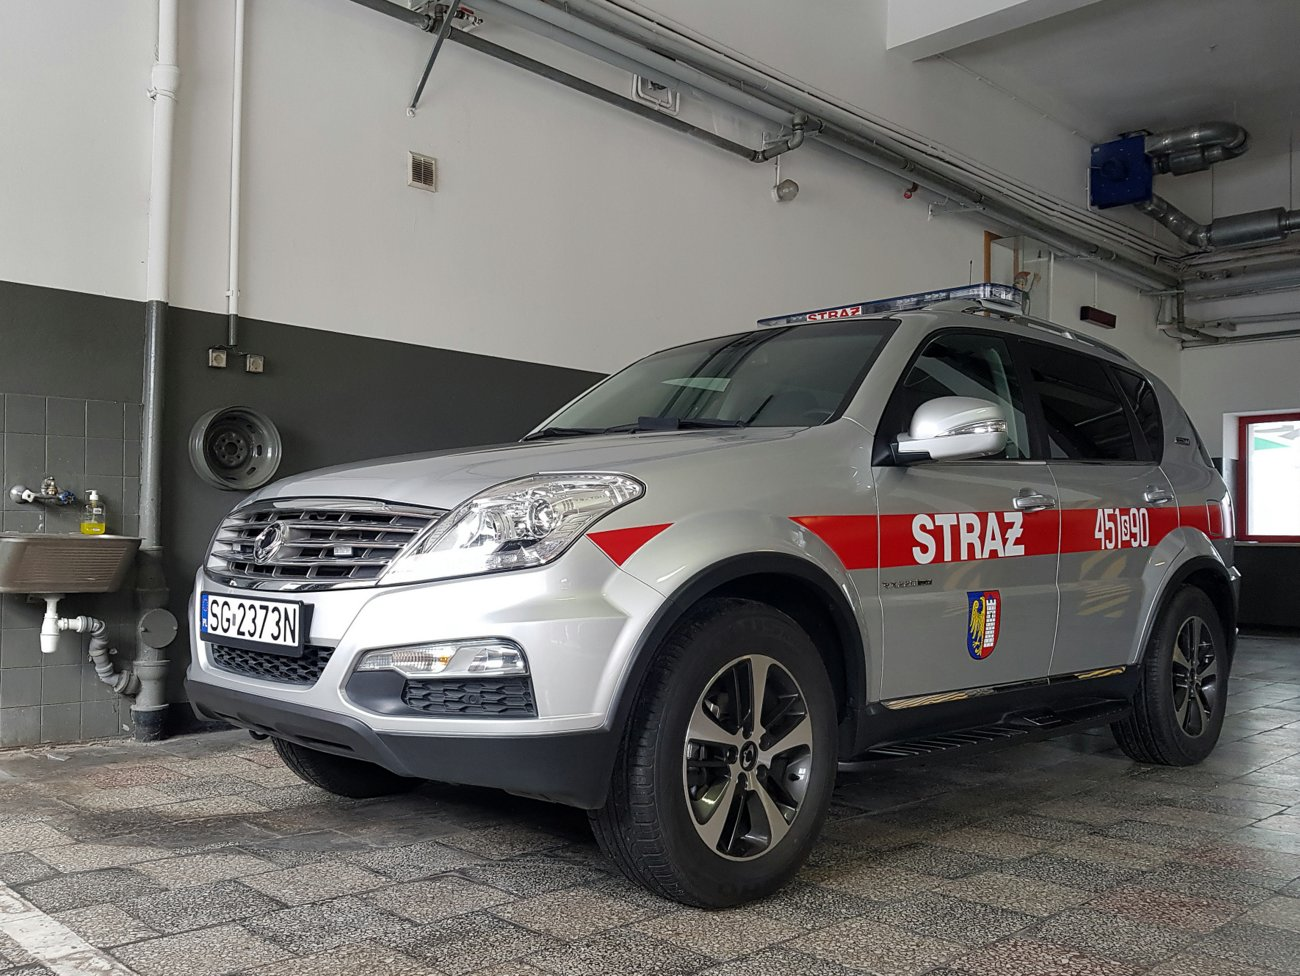 451[S]90 - SLOp SsangYong REXTON – JRG 1 Gliwice